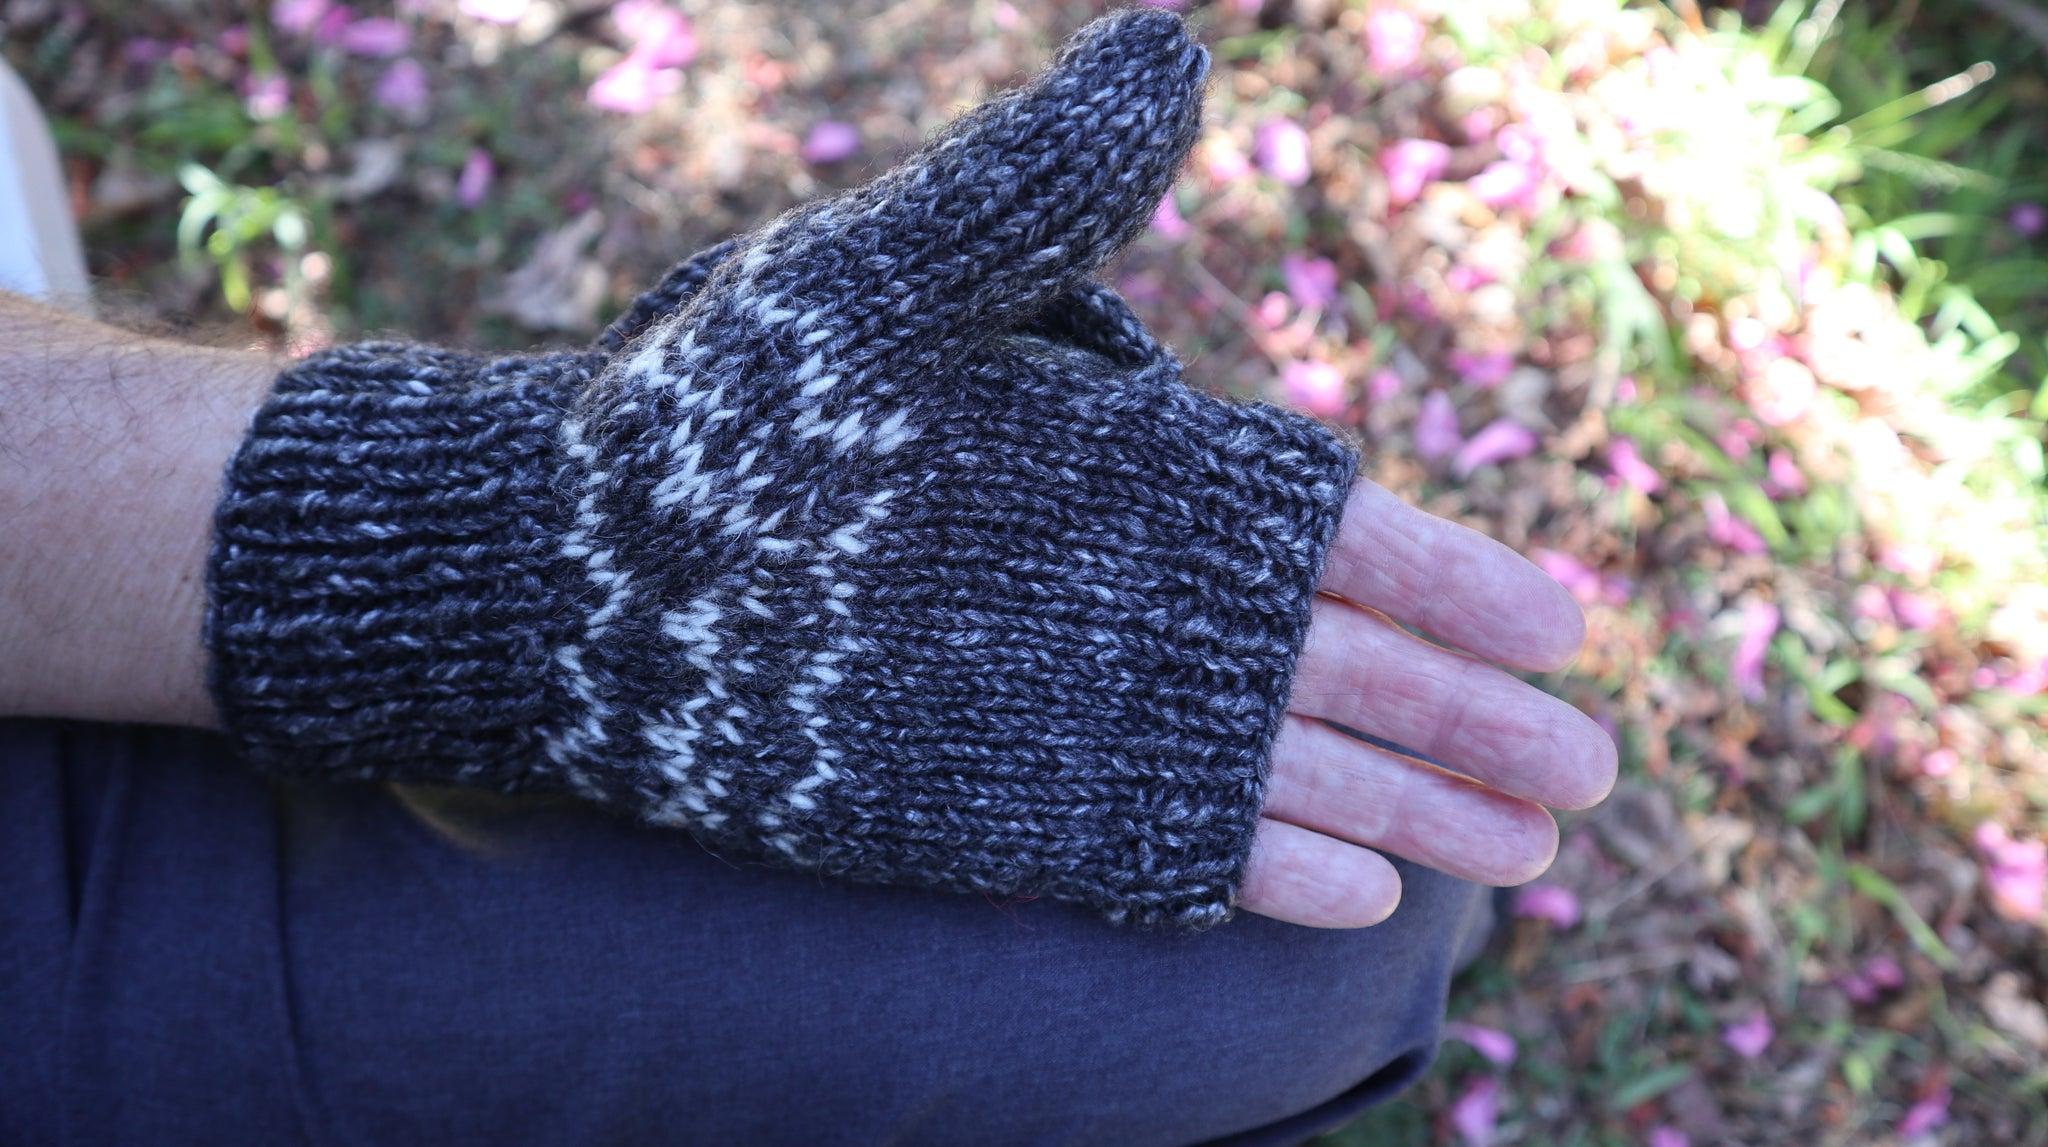 Fair Trade Ethical Adult Fingerless Gloves with Cap in Grey